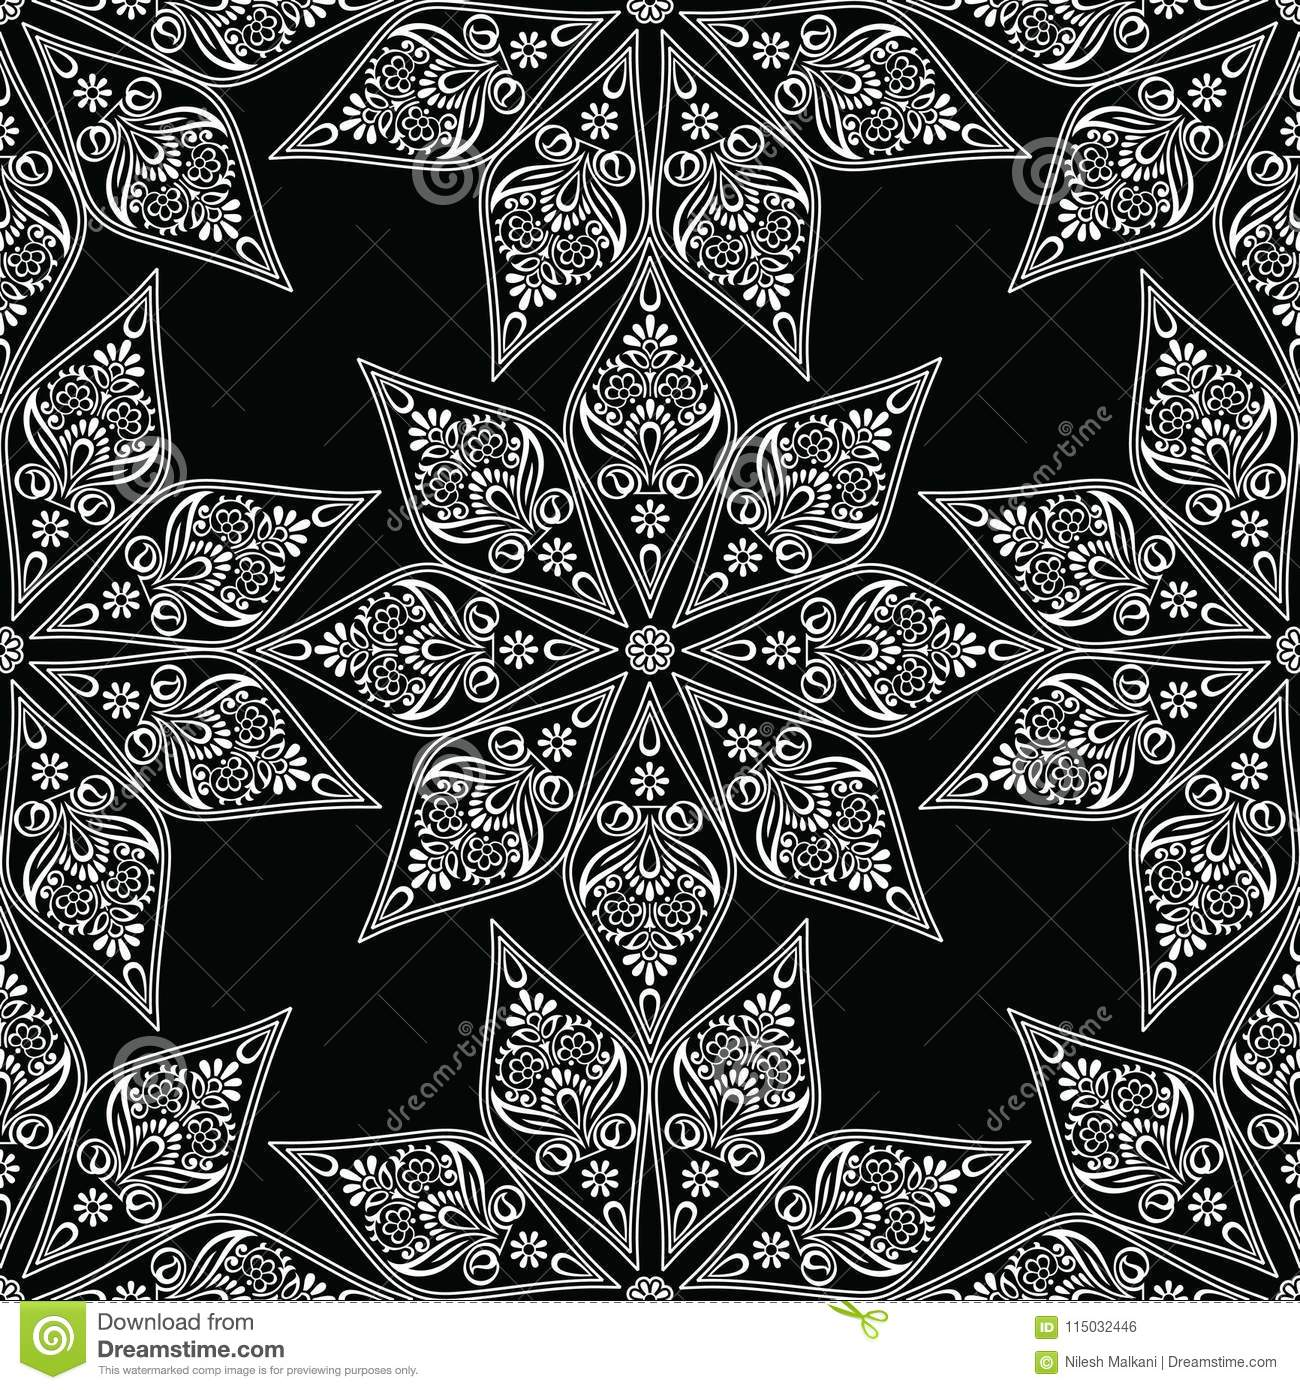 Seamless Fancy Black And White Floral Wallpaper Stock Vector